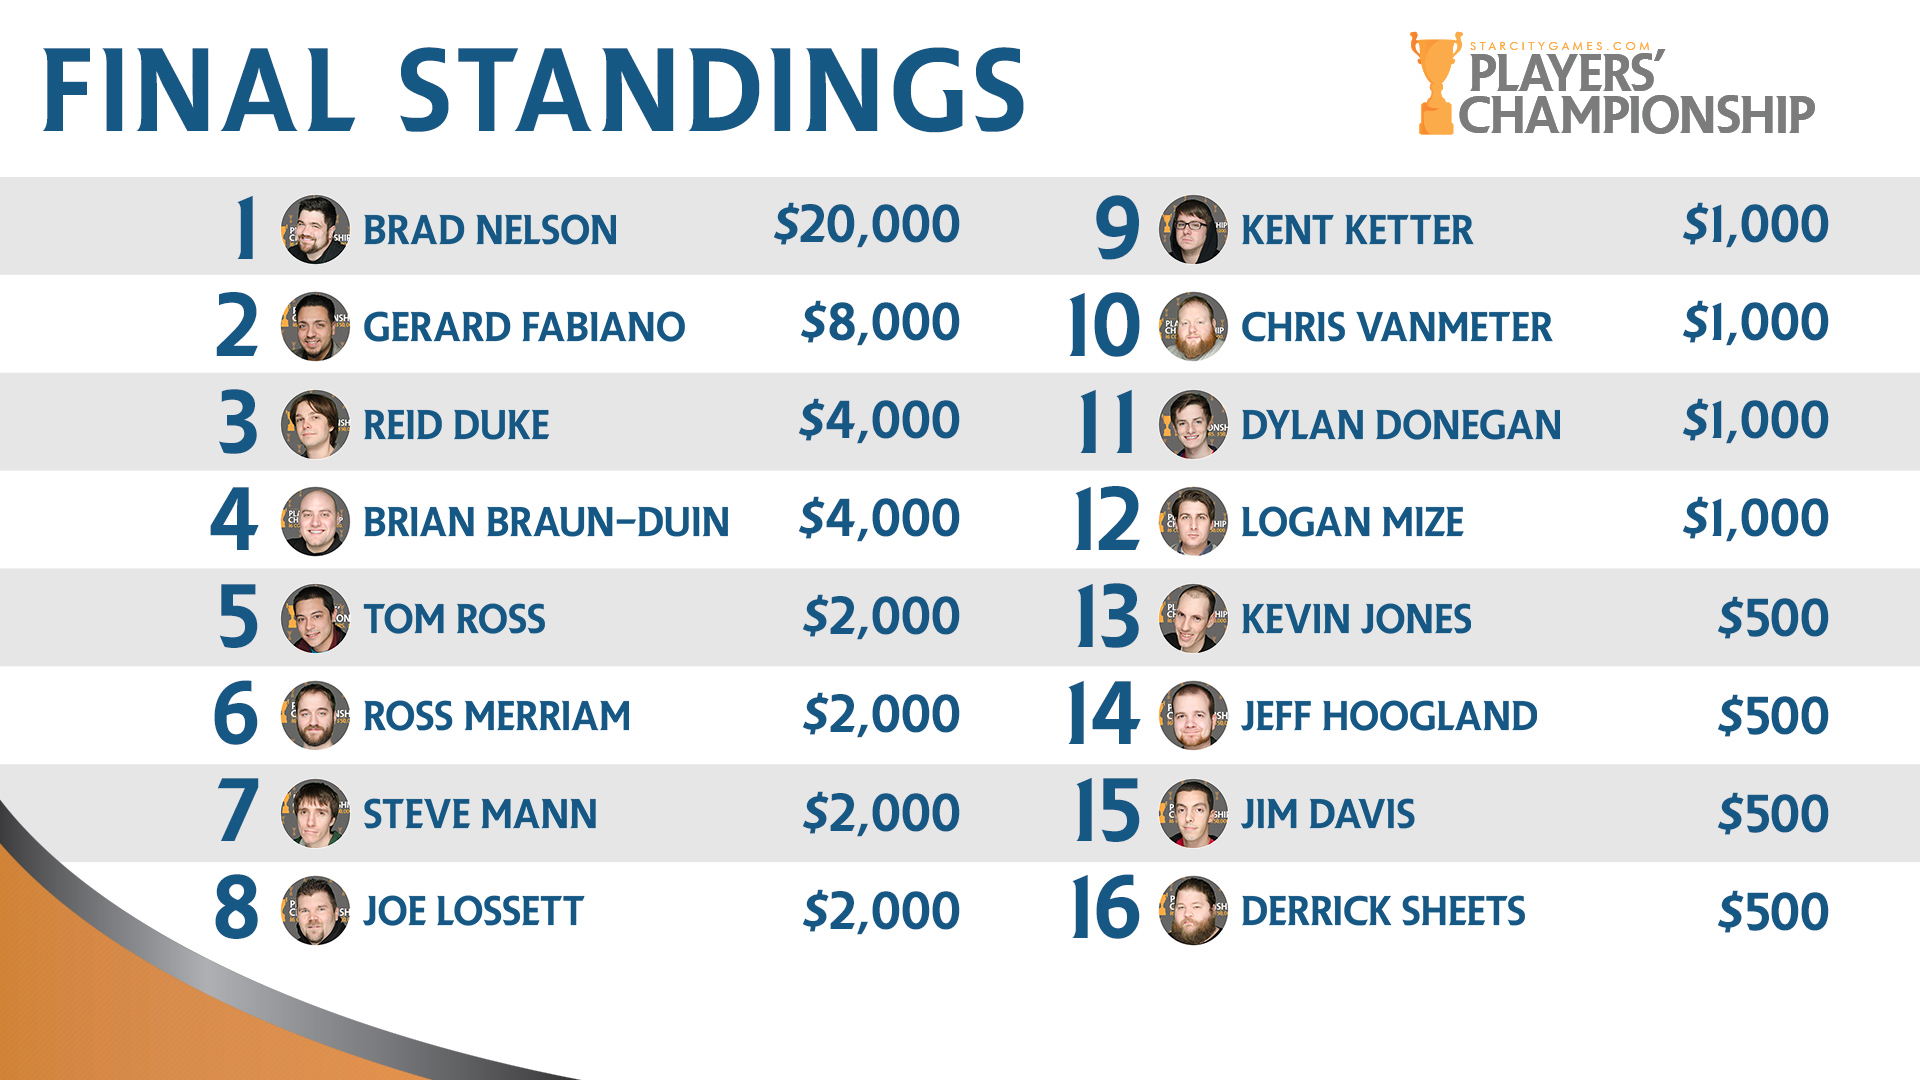 2014 Players' Championship Final Standings